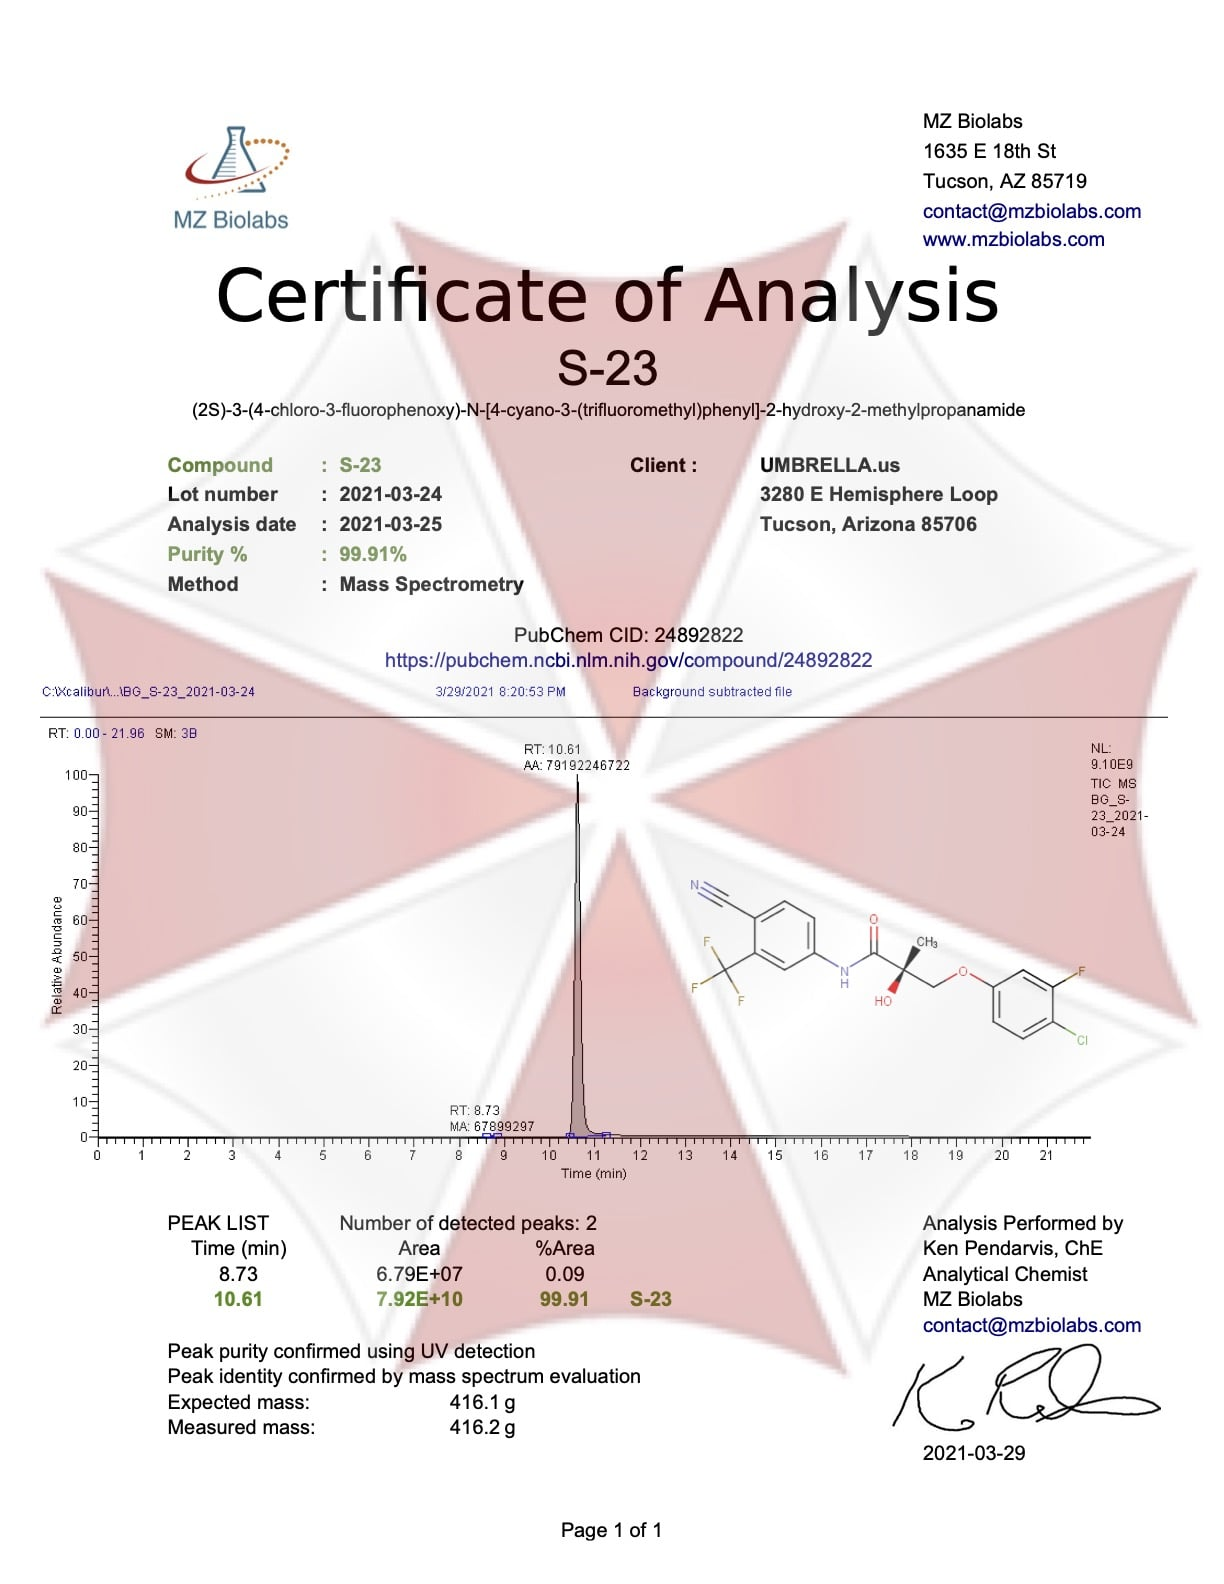 S-23 Certificate of Authenticity